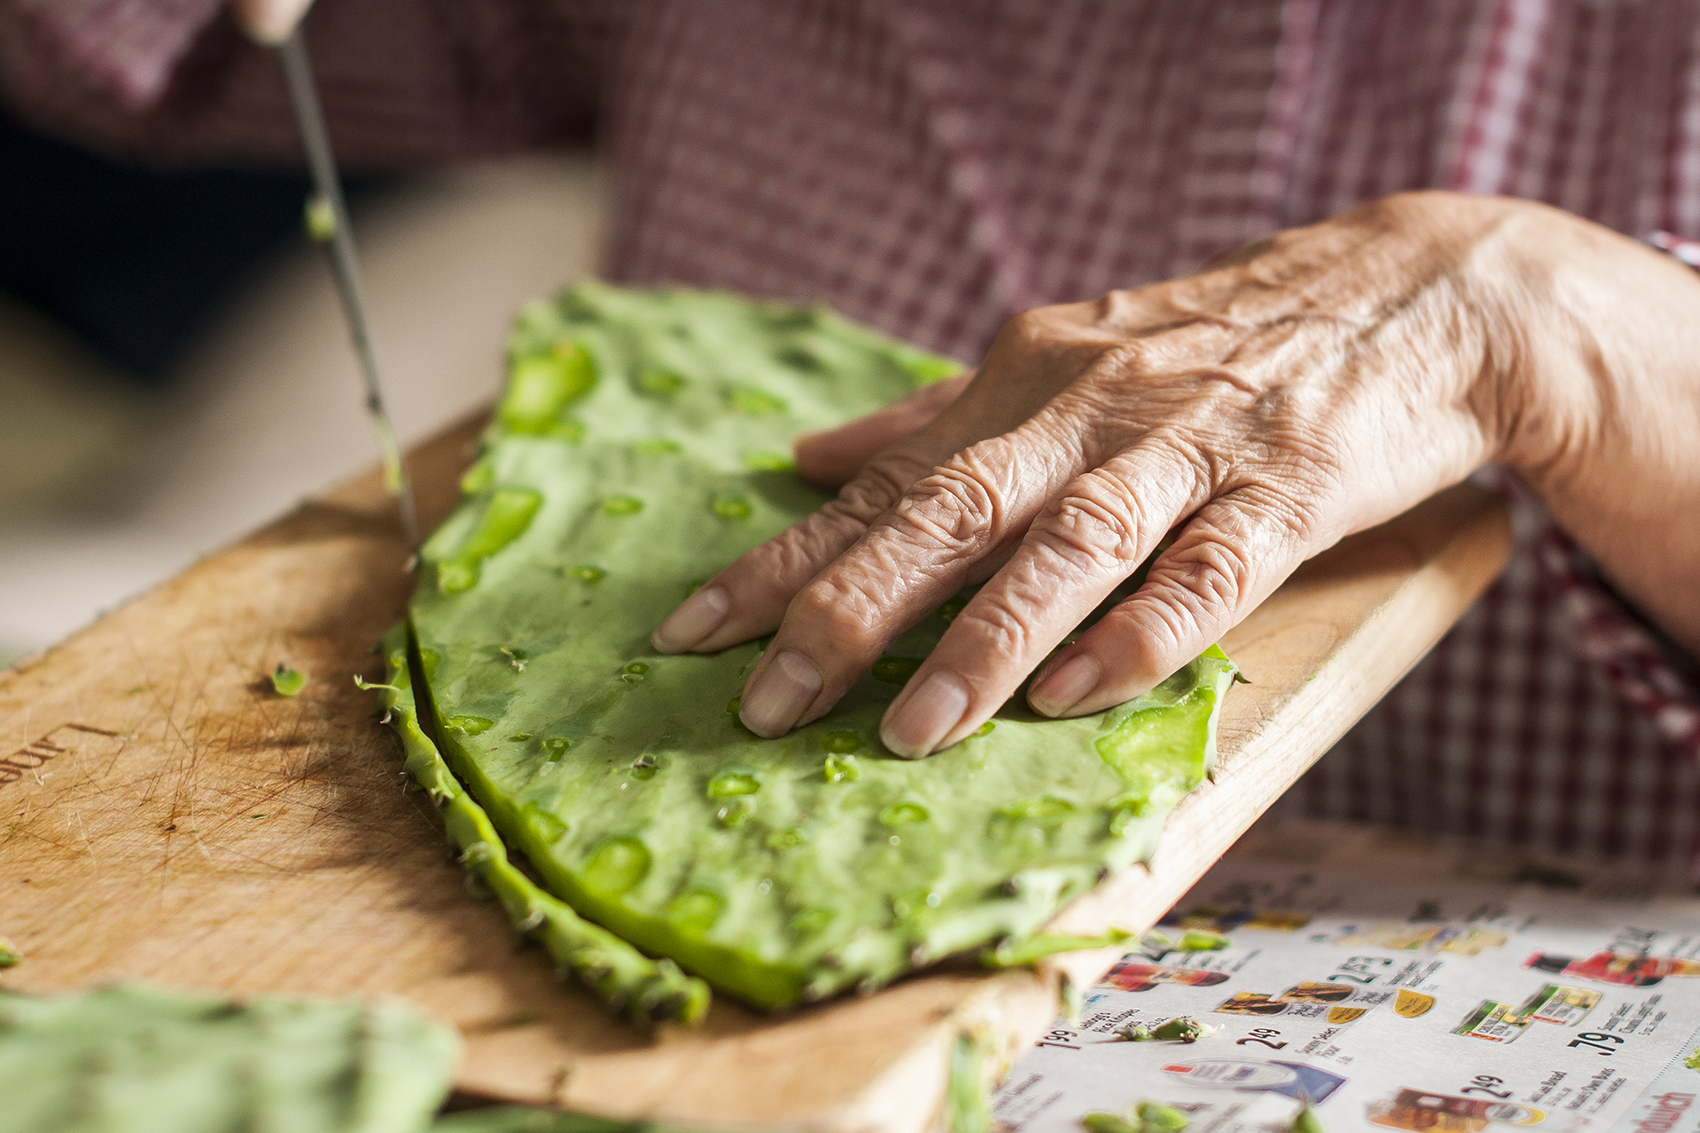 close up photo of a elderly woman's hands preparing nopales